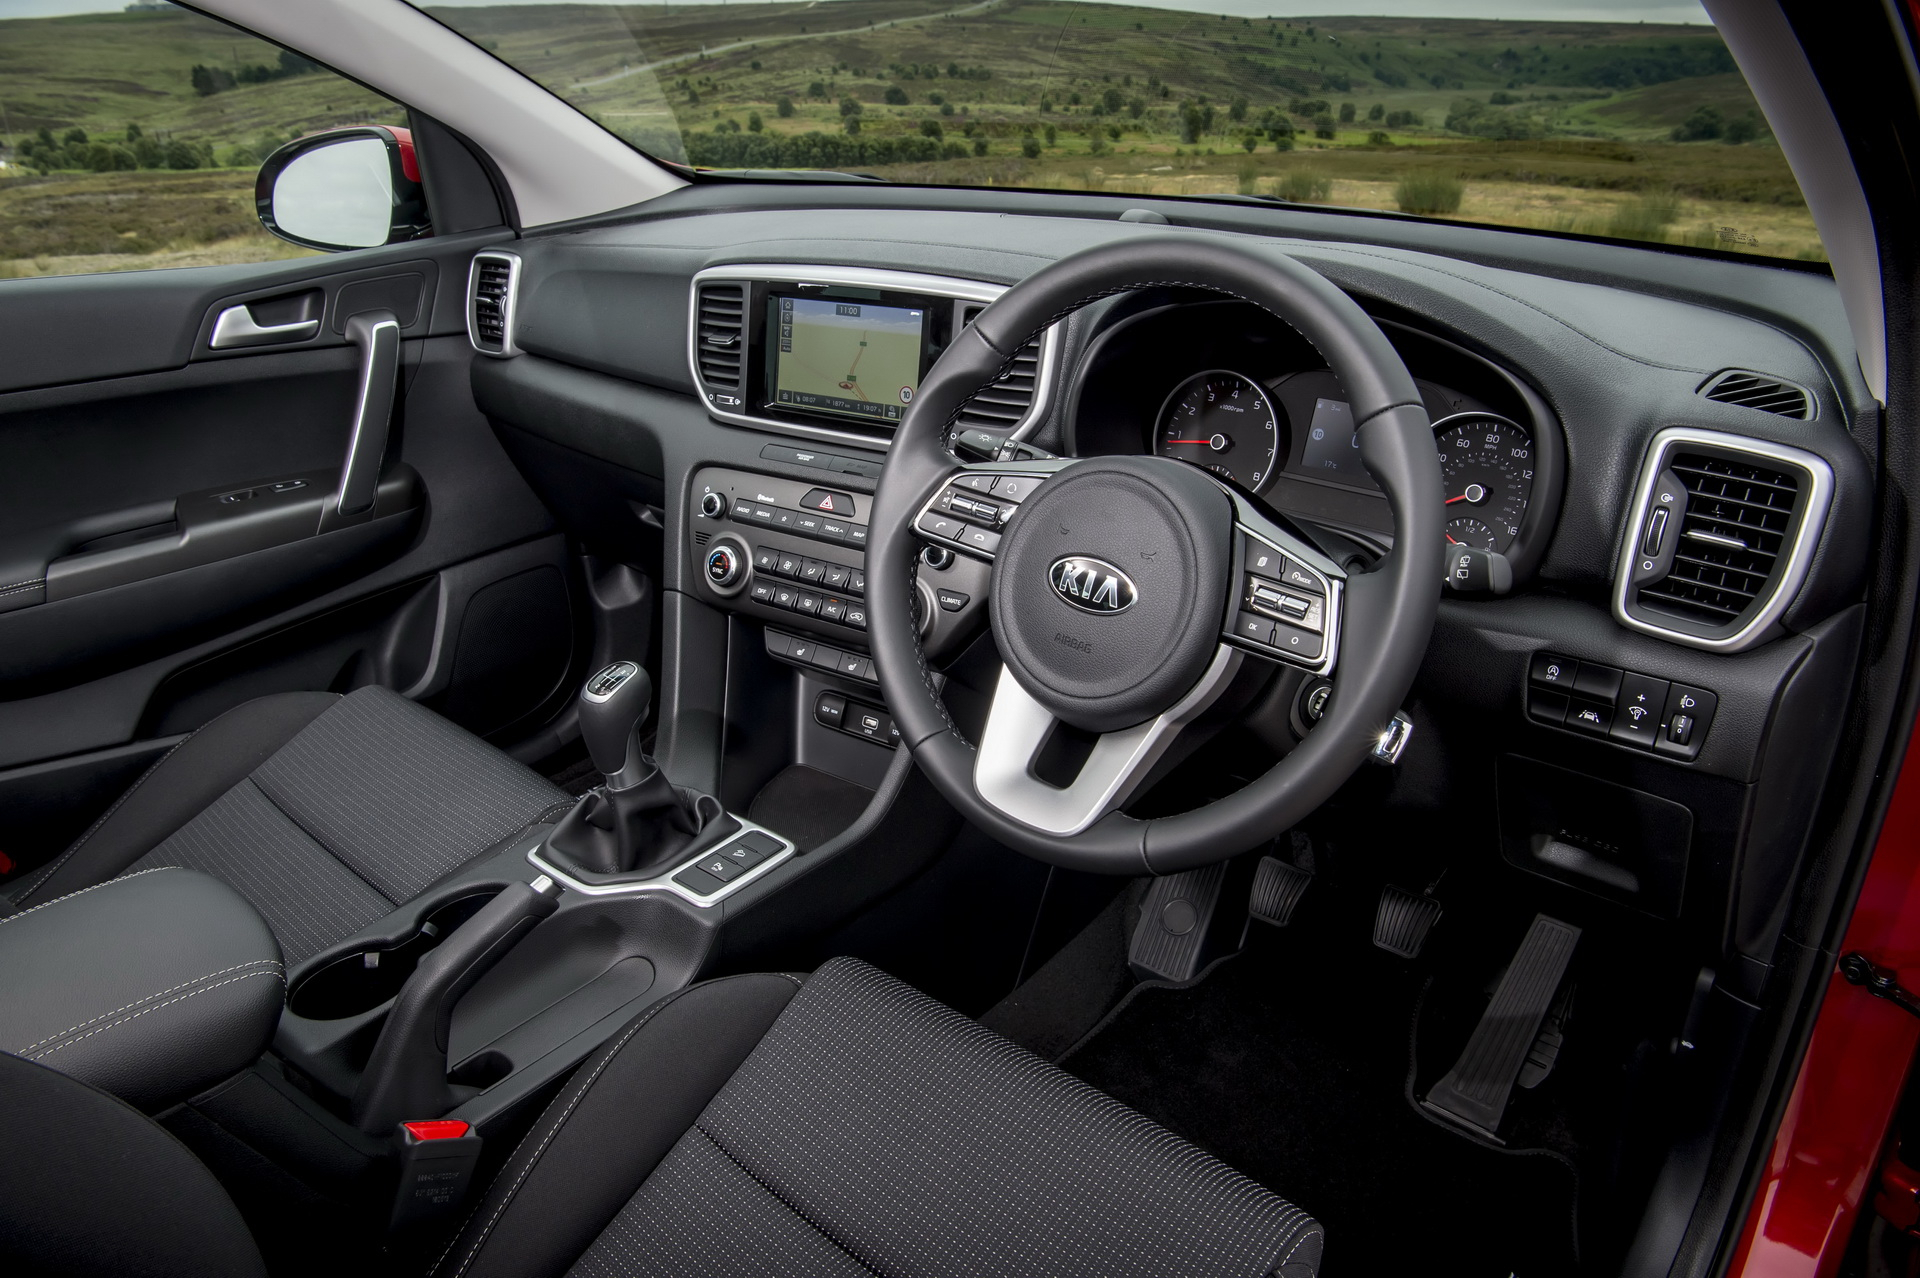 2021 Kia Sportage Awd Configuration Update, Interior Feature for 2021 Kia Sportage Sx Turbo Safety Feature, Electric Interior